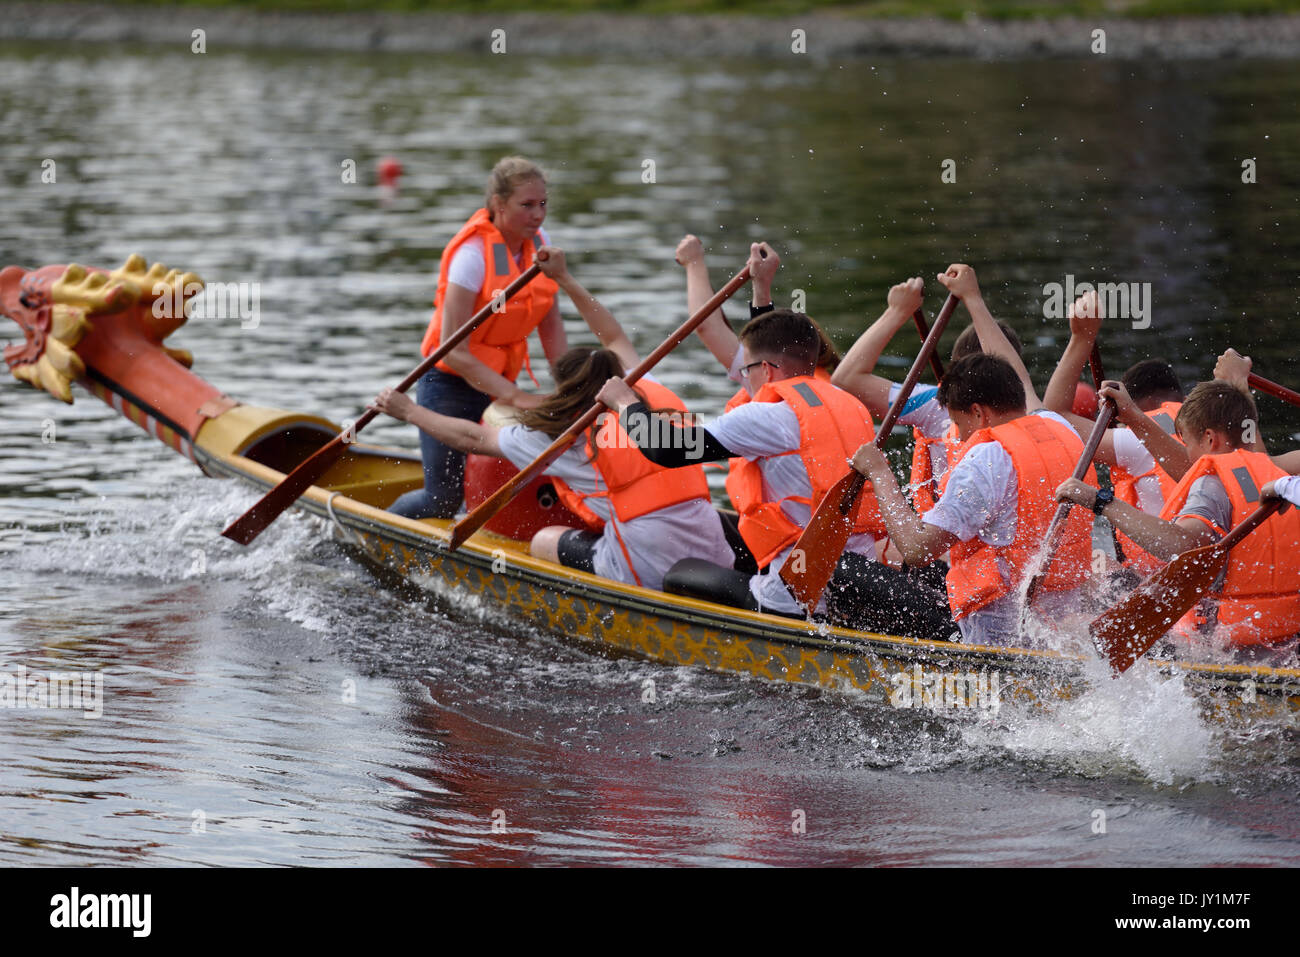 St. Petersburg, Russia - June 12, 2015: Competitions of Dragon boats during the Golden Blades Regatta. This kind of competitions make the race accessi - Stock Image